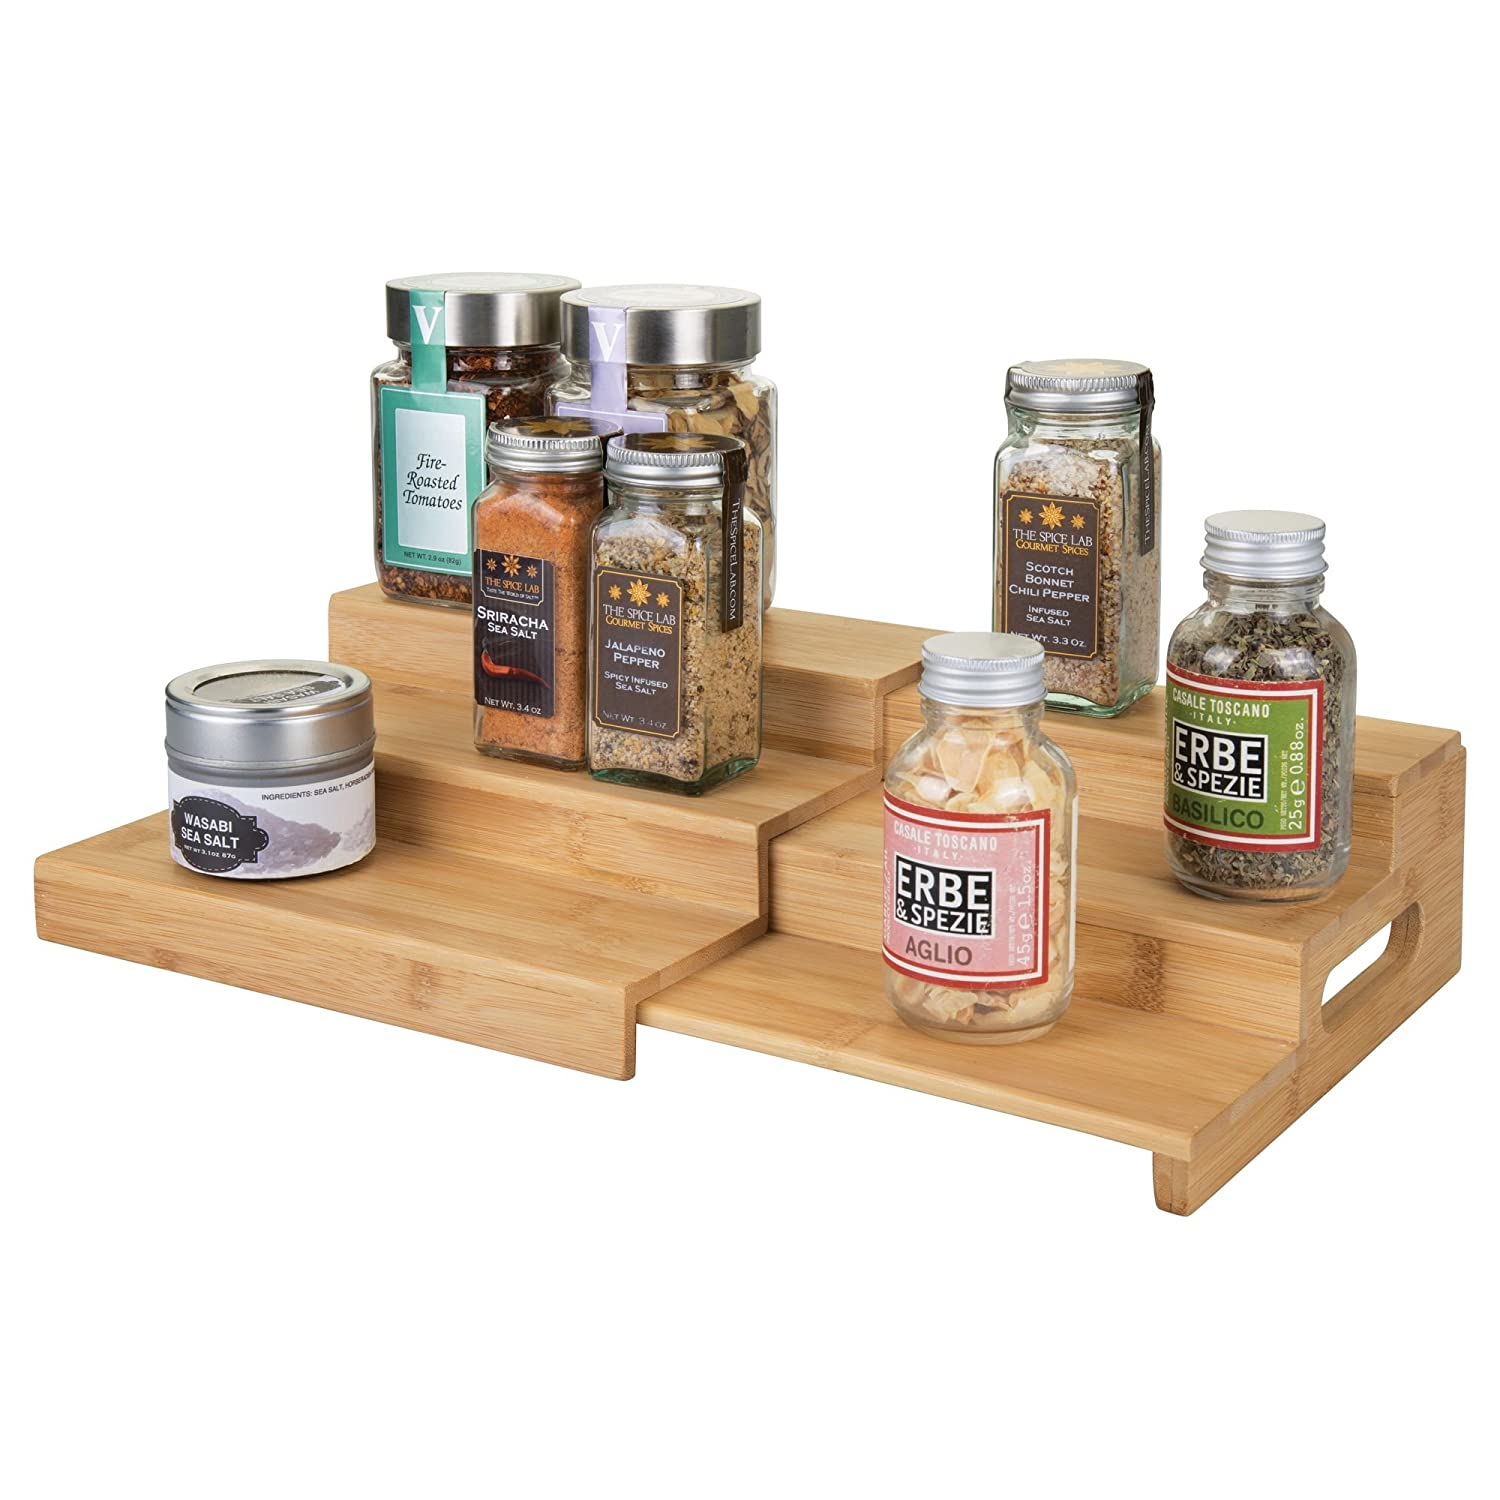 mDesign Bamboo Expandable Kitchen Cabinet Pantry Shelf Organizer/Spice Rack - 3 Level Storage Easy Pull Out Handle Eco-Friendly Expands up to 15  Wide ...  sc 1 st  Amazon.com & Amazon.com: mDesign Bamboo Expandable Kitchen Cabinet Pantry Shelf ...